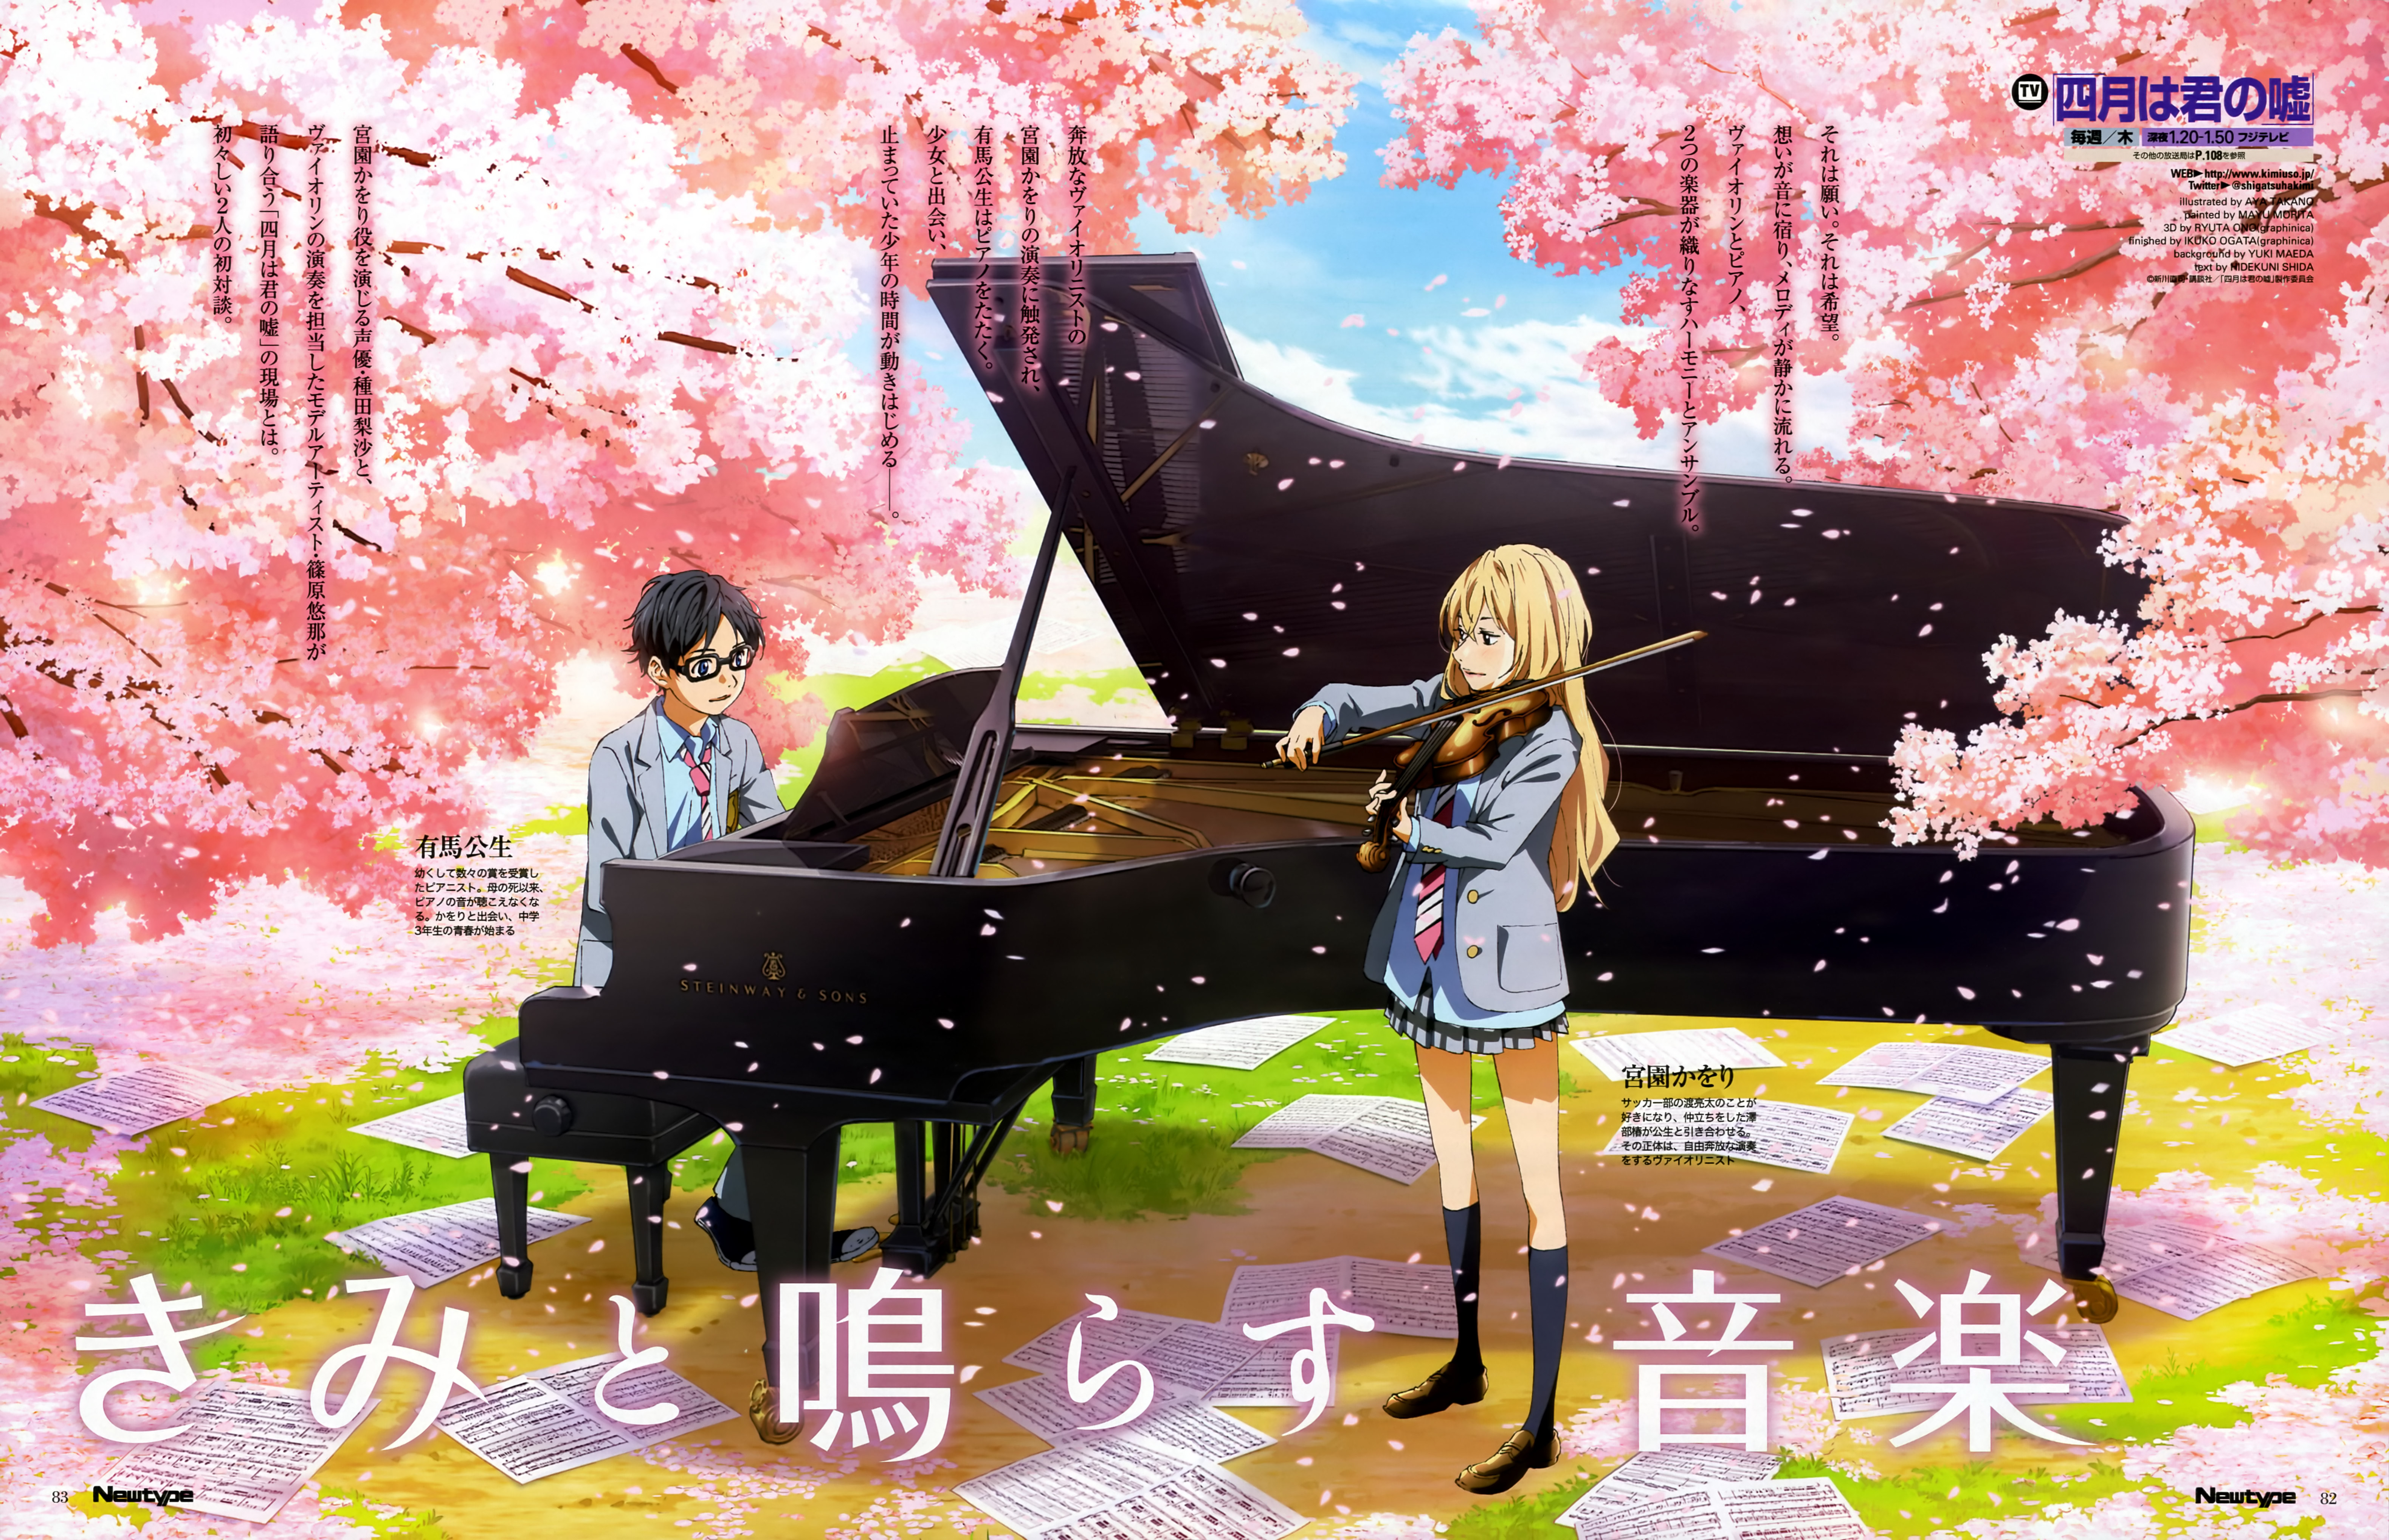 Top 10 Anime Series from NewType's May 2015 Issue Shigatsu wa Kimi no Uso